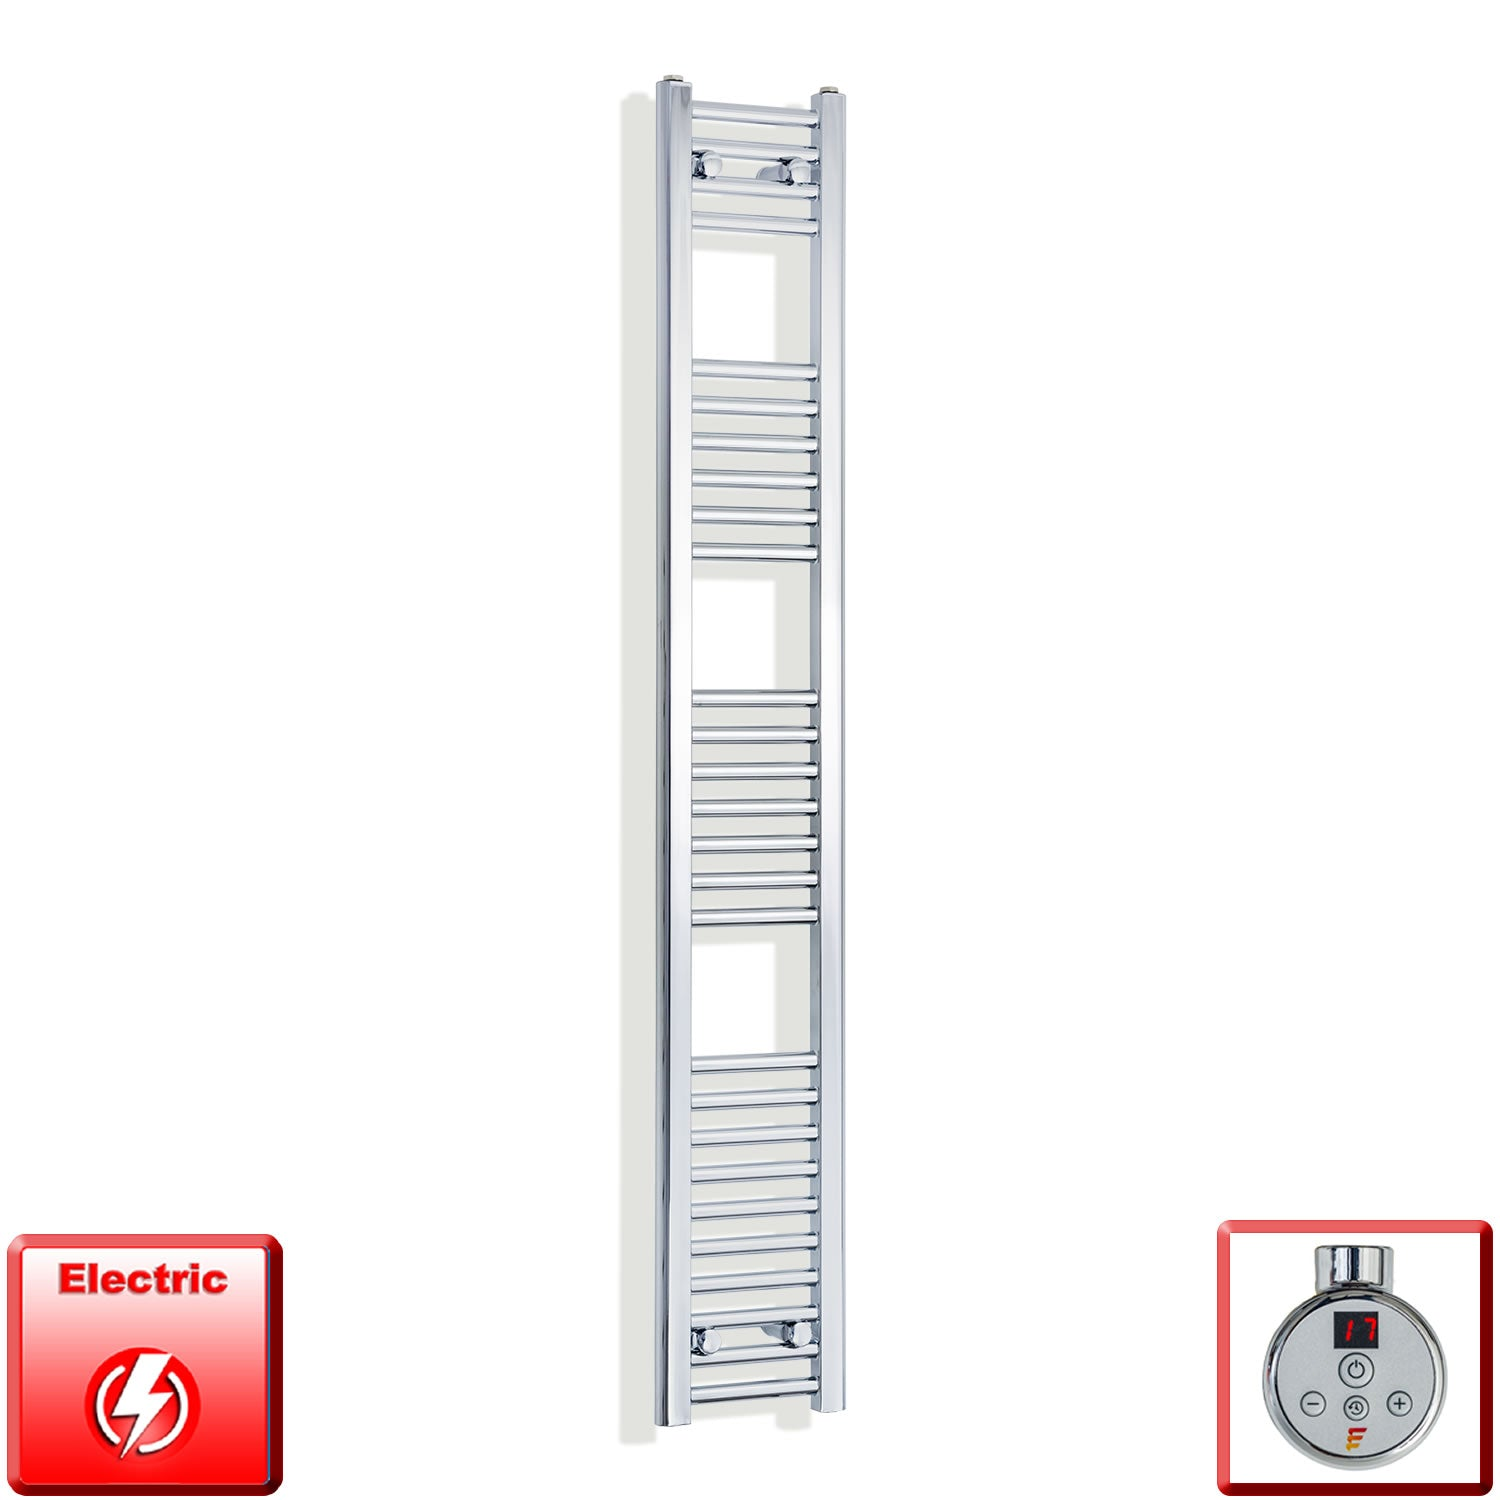 250mm Wide 1600mm High Pre-Filled Chrome Electric Towel Rail Radiator With Thermostatic DIGI Element